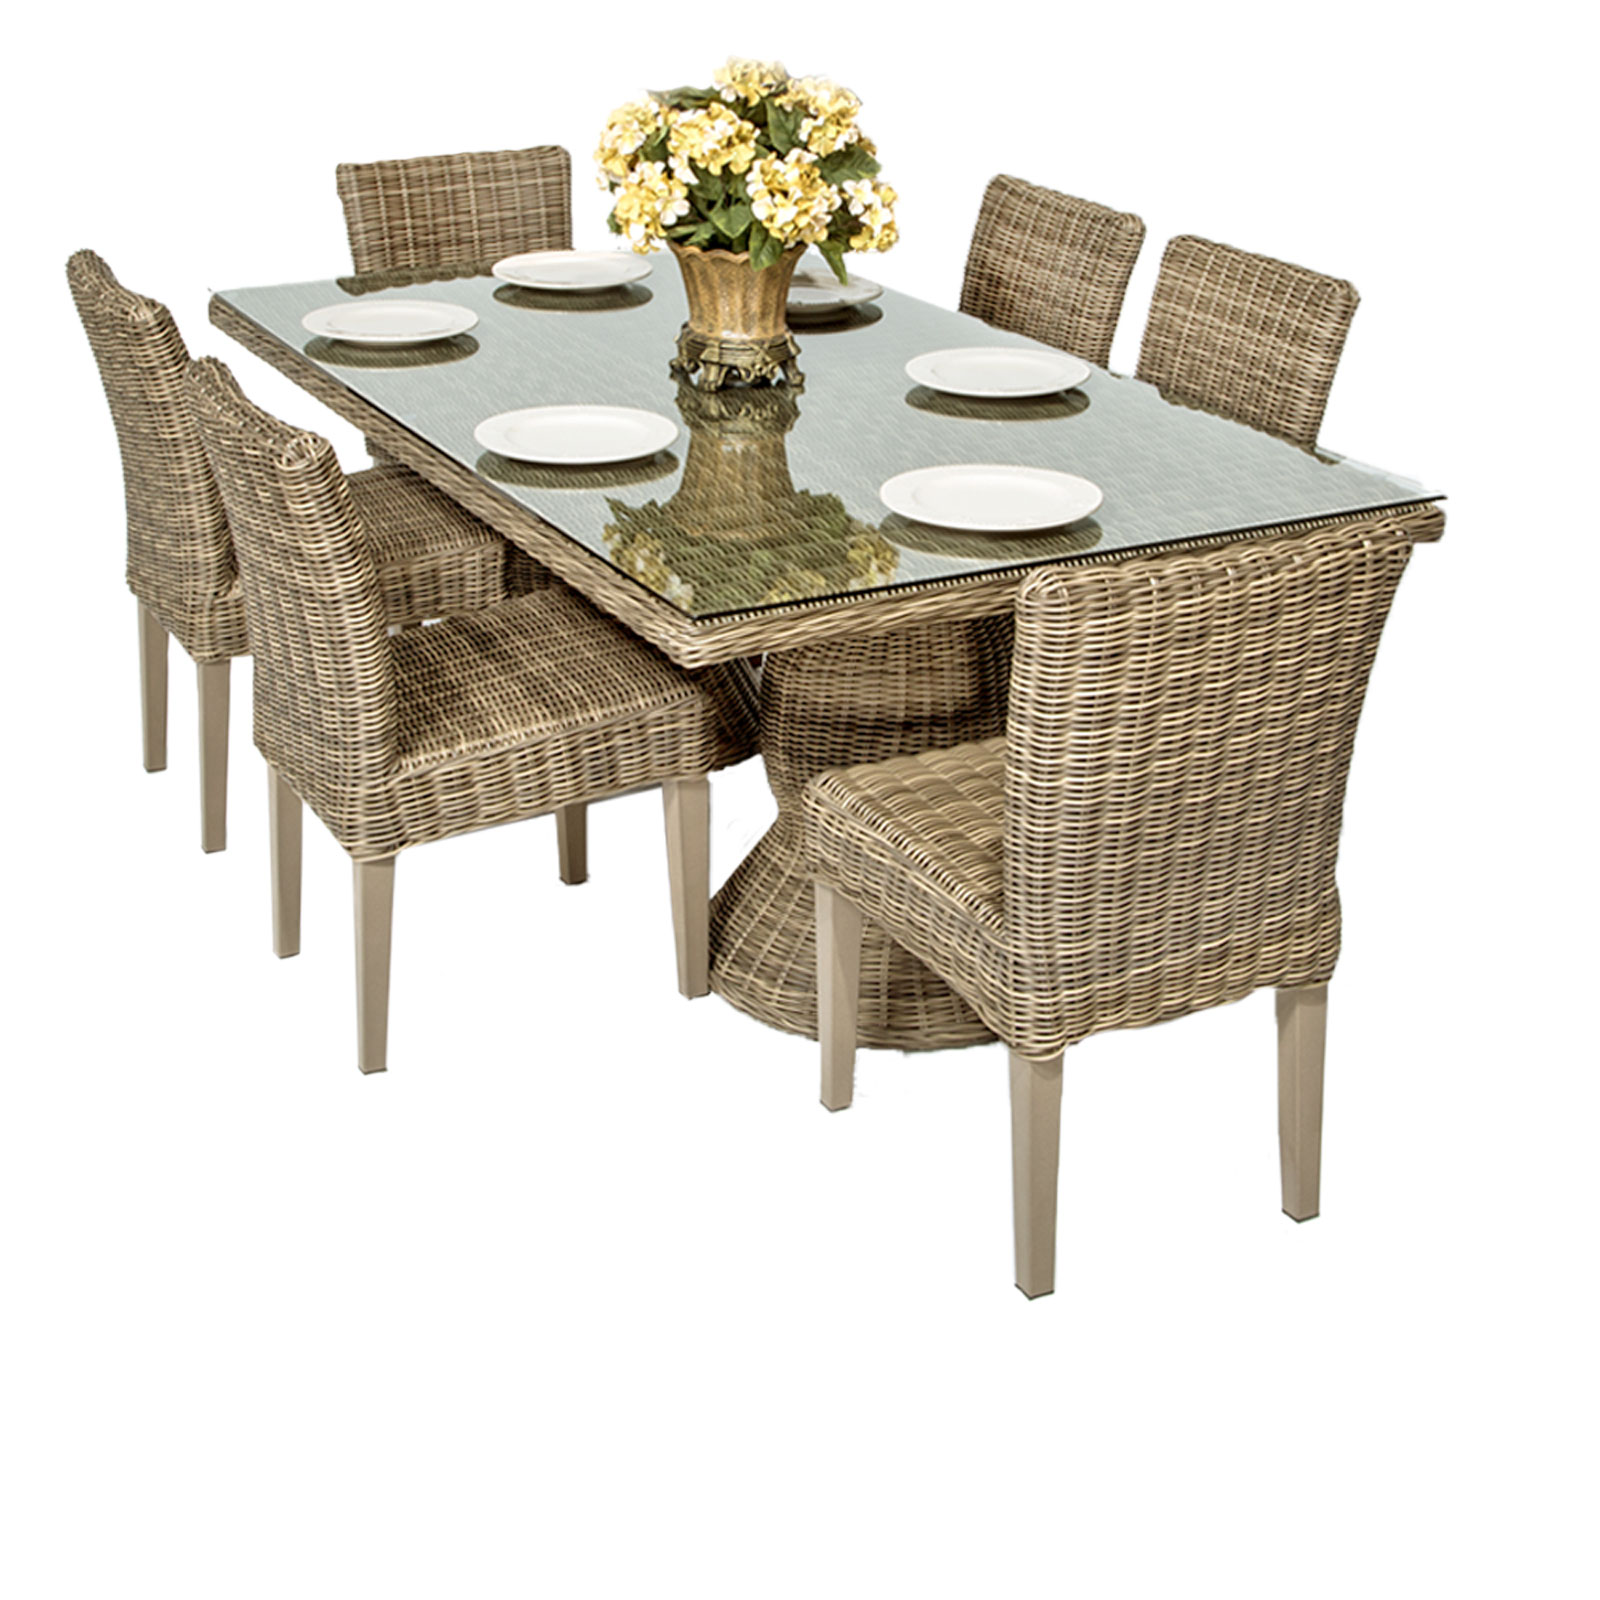 Stone Table U0026 Chairs   Discount Outdoor Furniture Sets